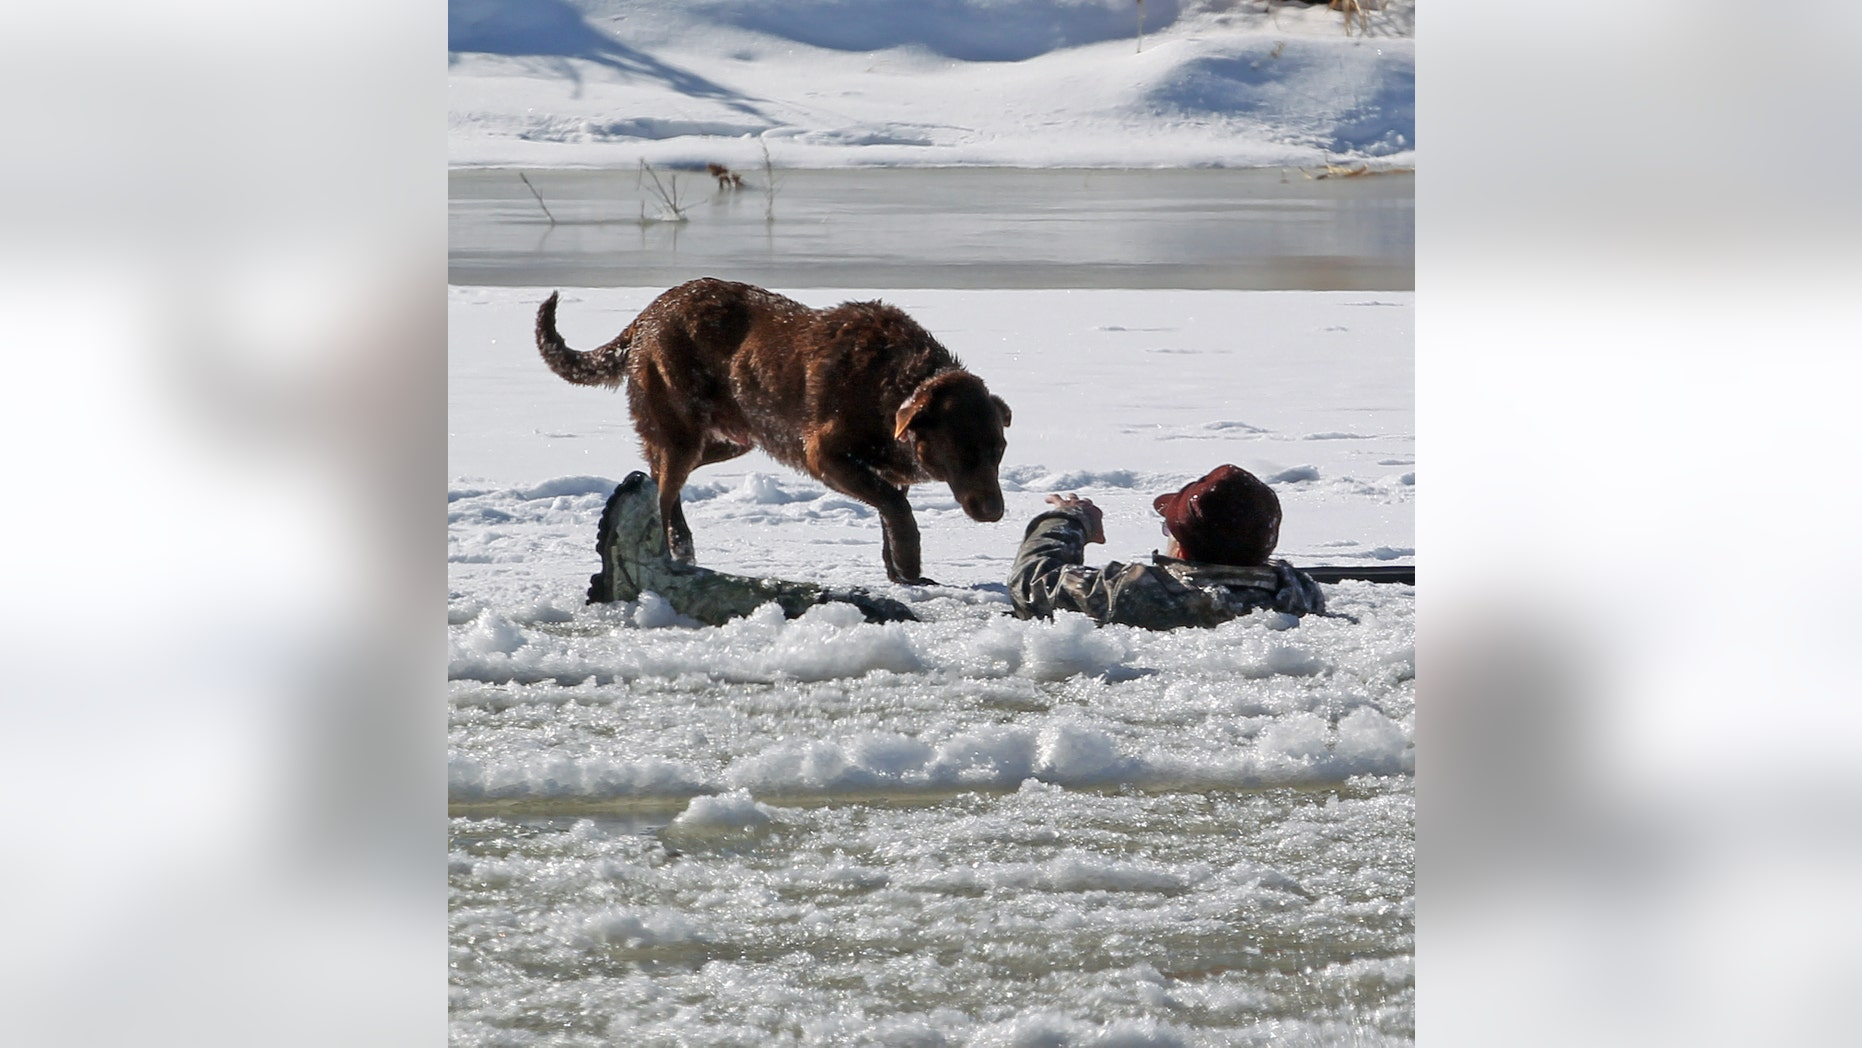 A hunter gestures his dog away today as he waits in the Colorado River for rescue, Tuesday, Jan. 15, 2013 in Mesa County, Colo. The man fell in while retrieving a goose he shot. Grand Junction Fire Department and Lower Valley Fire Department responded to the scene to rescue the man, who reportedly had been in the water for nearly 30 minutes. (AP Photo/The Grand Junction Daily Sentinel, Dean Humphrey) MANDATORY CREDIT